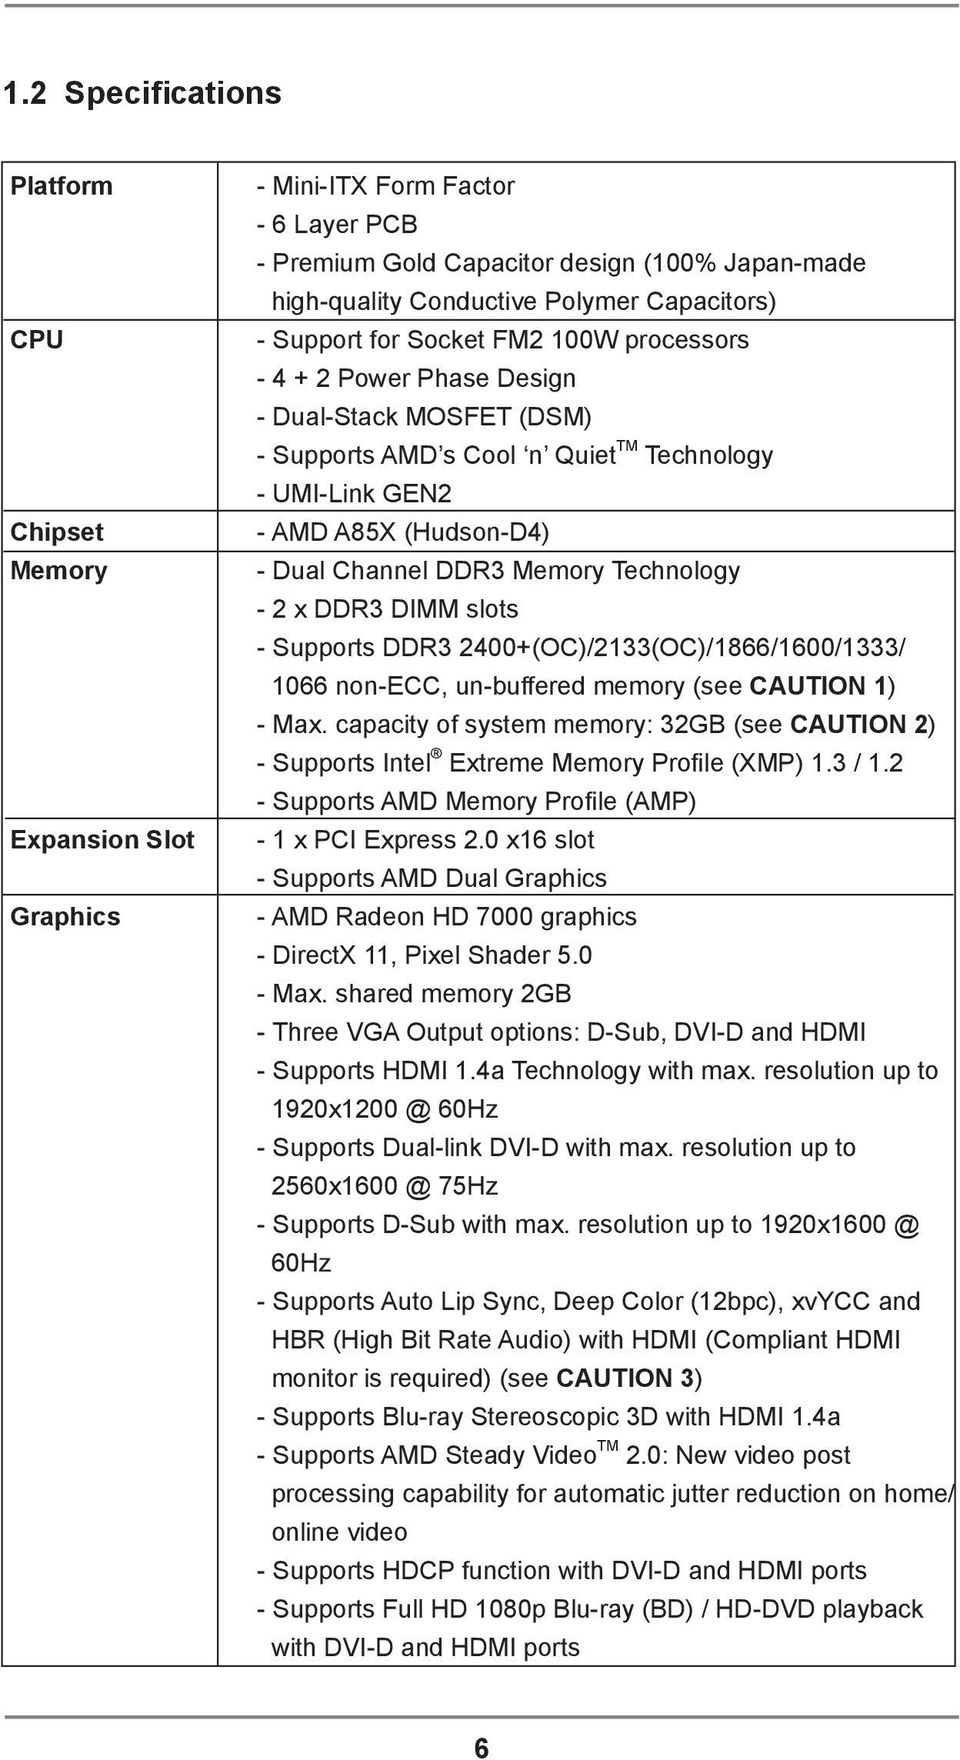 Memory Technology - 2 x DDR3 DIMM slots - Supports DDR3 2400+(OC)/2133(OC)/1866/1600/1333/ 1066 non-ecc, un-buffered memory (see CAUTION 1) - Max.